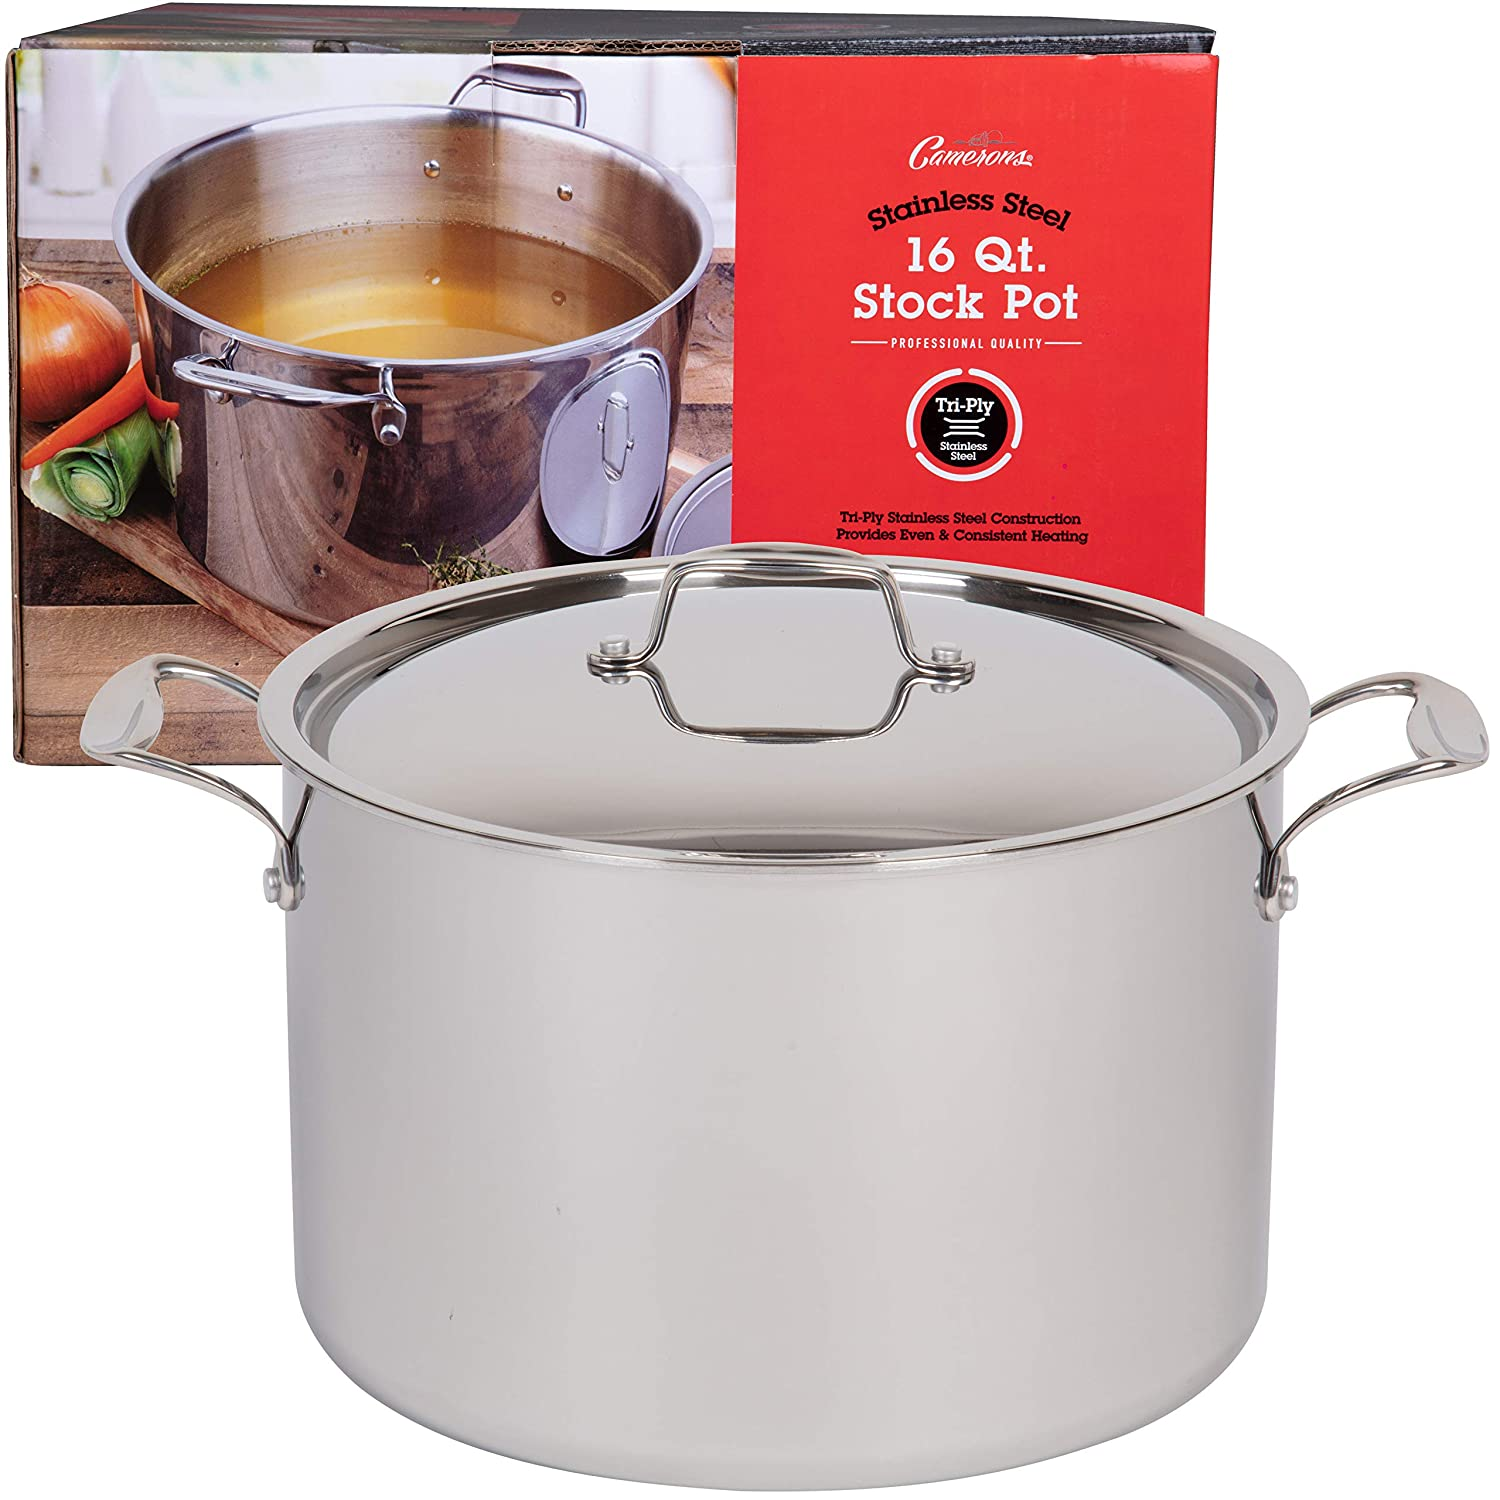 Camerons 16 Quart Stockpot Tri-Ply Stainless Steel Stock Pot Stay Cool Handles and Induction Compatible Commercial Grade Sauce Pot for Canning w Stick Resistant Interior